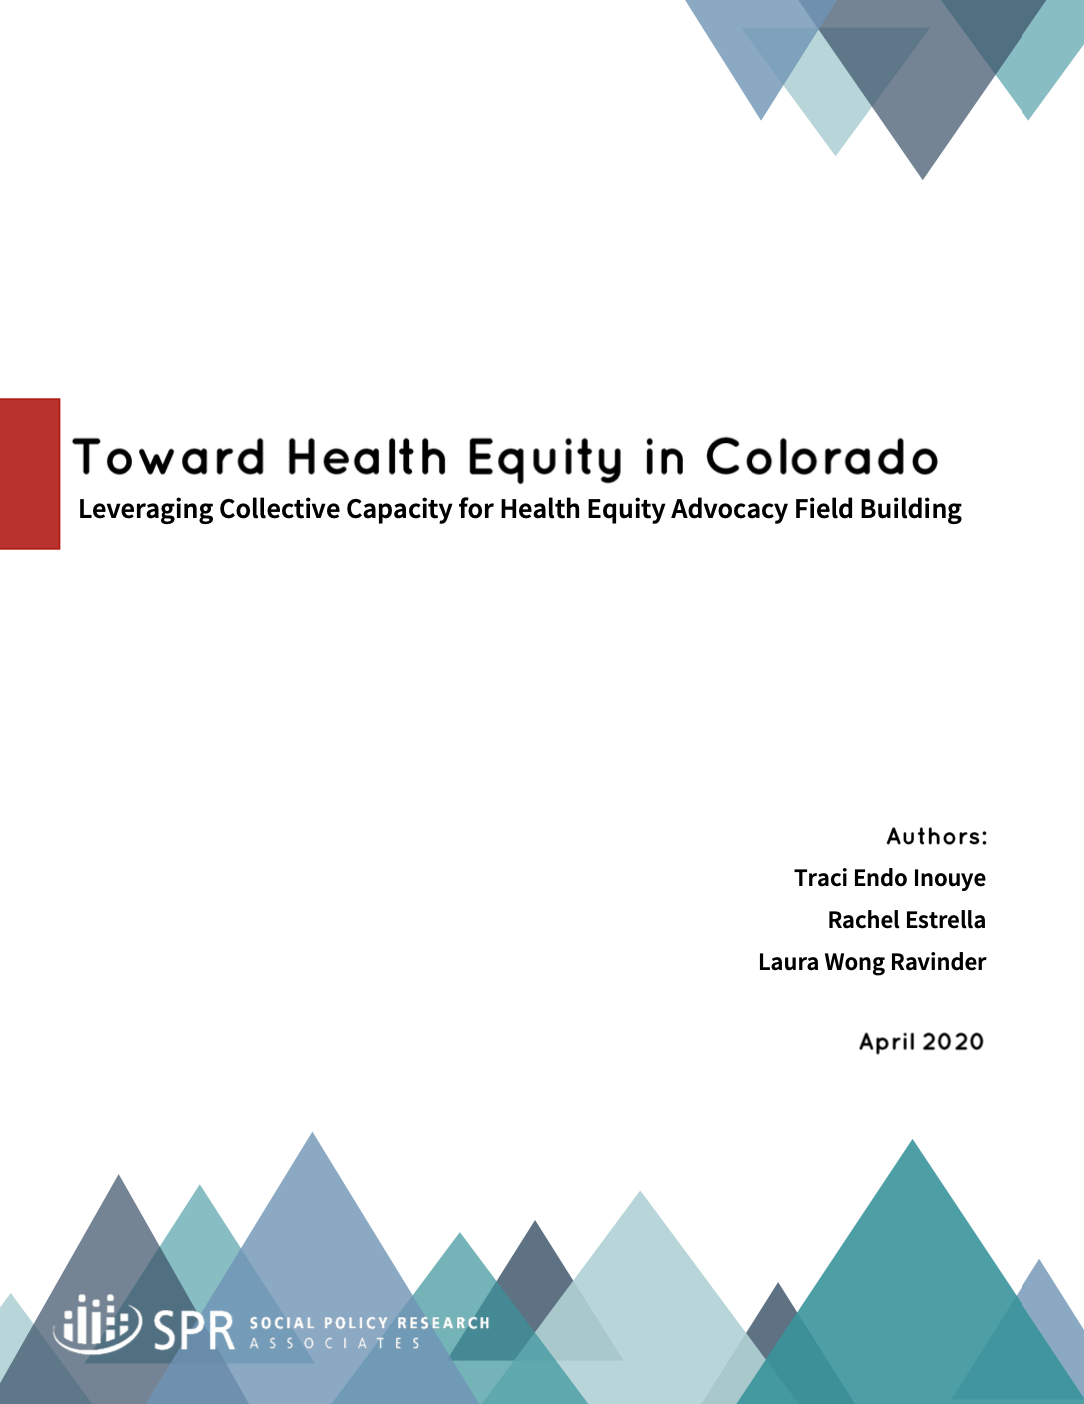 Cover of Phase 3 – Leveraging Collective Capacity for Health Equity Advocacy Field Building